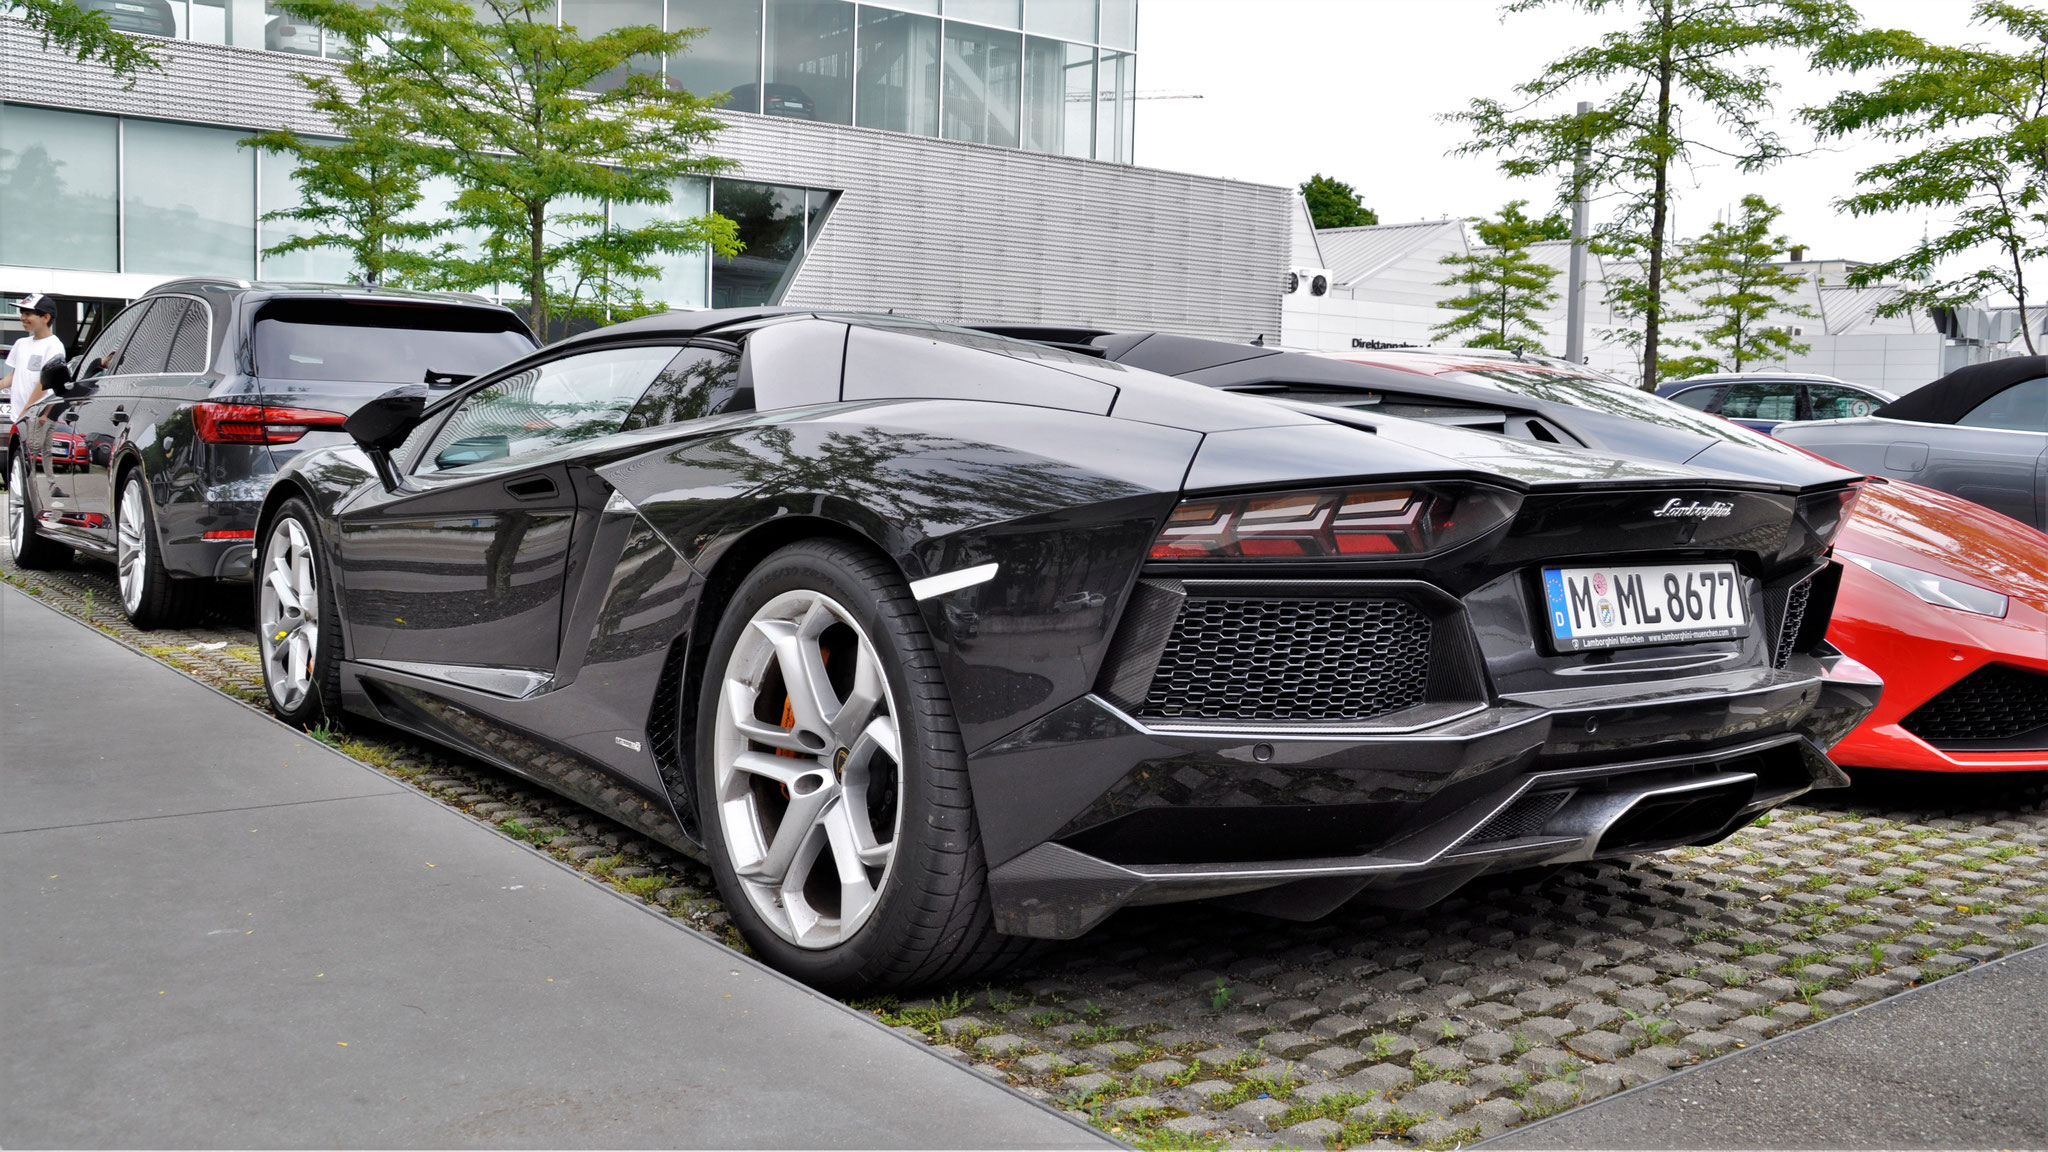 Lamborghini Aventador LP700-4 Roadster - M-ML-8677